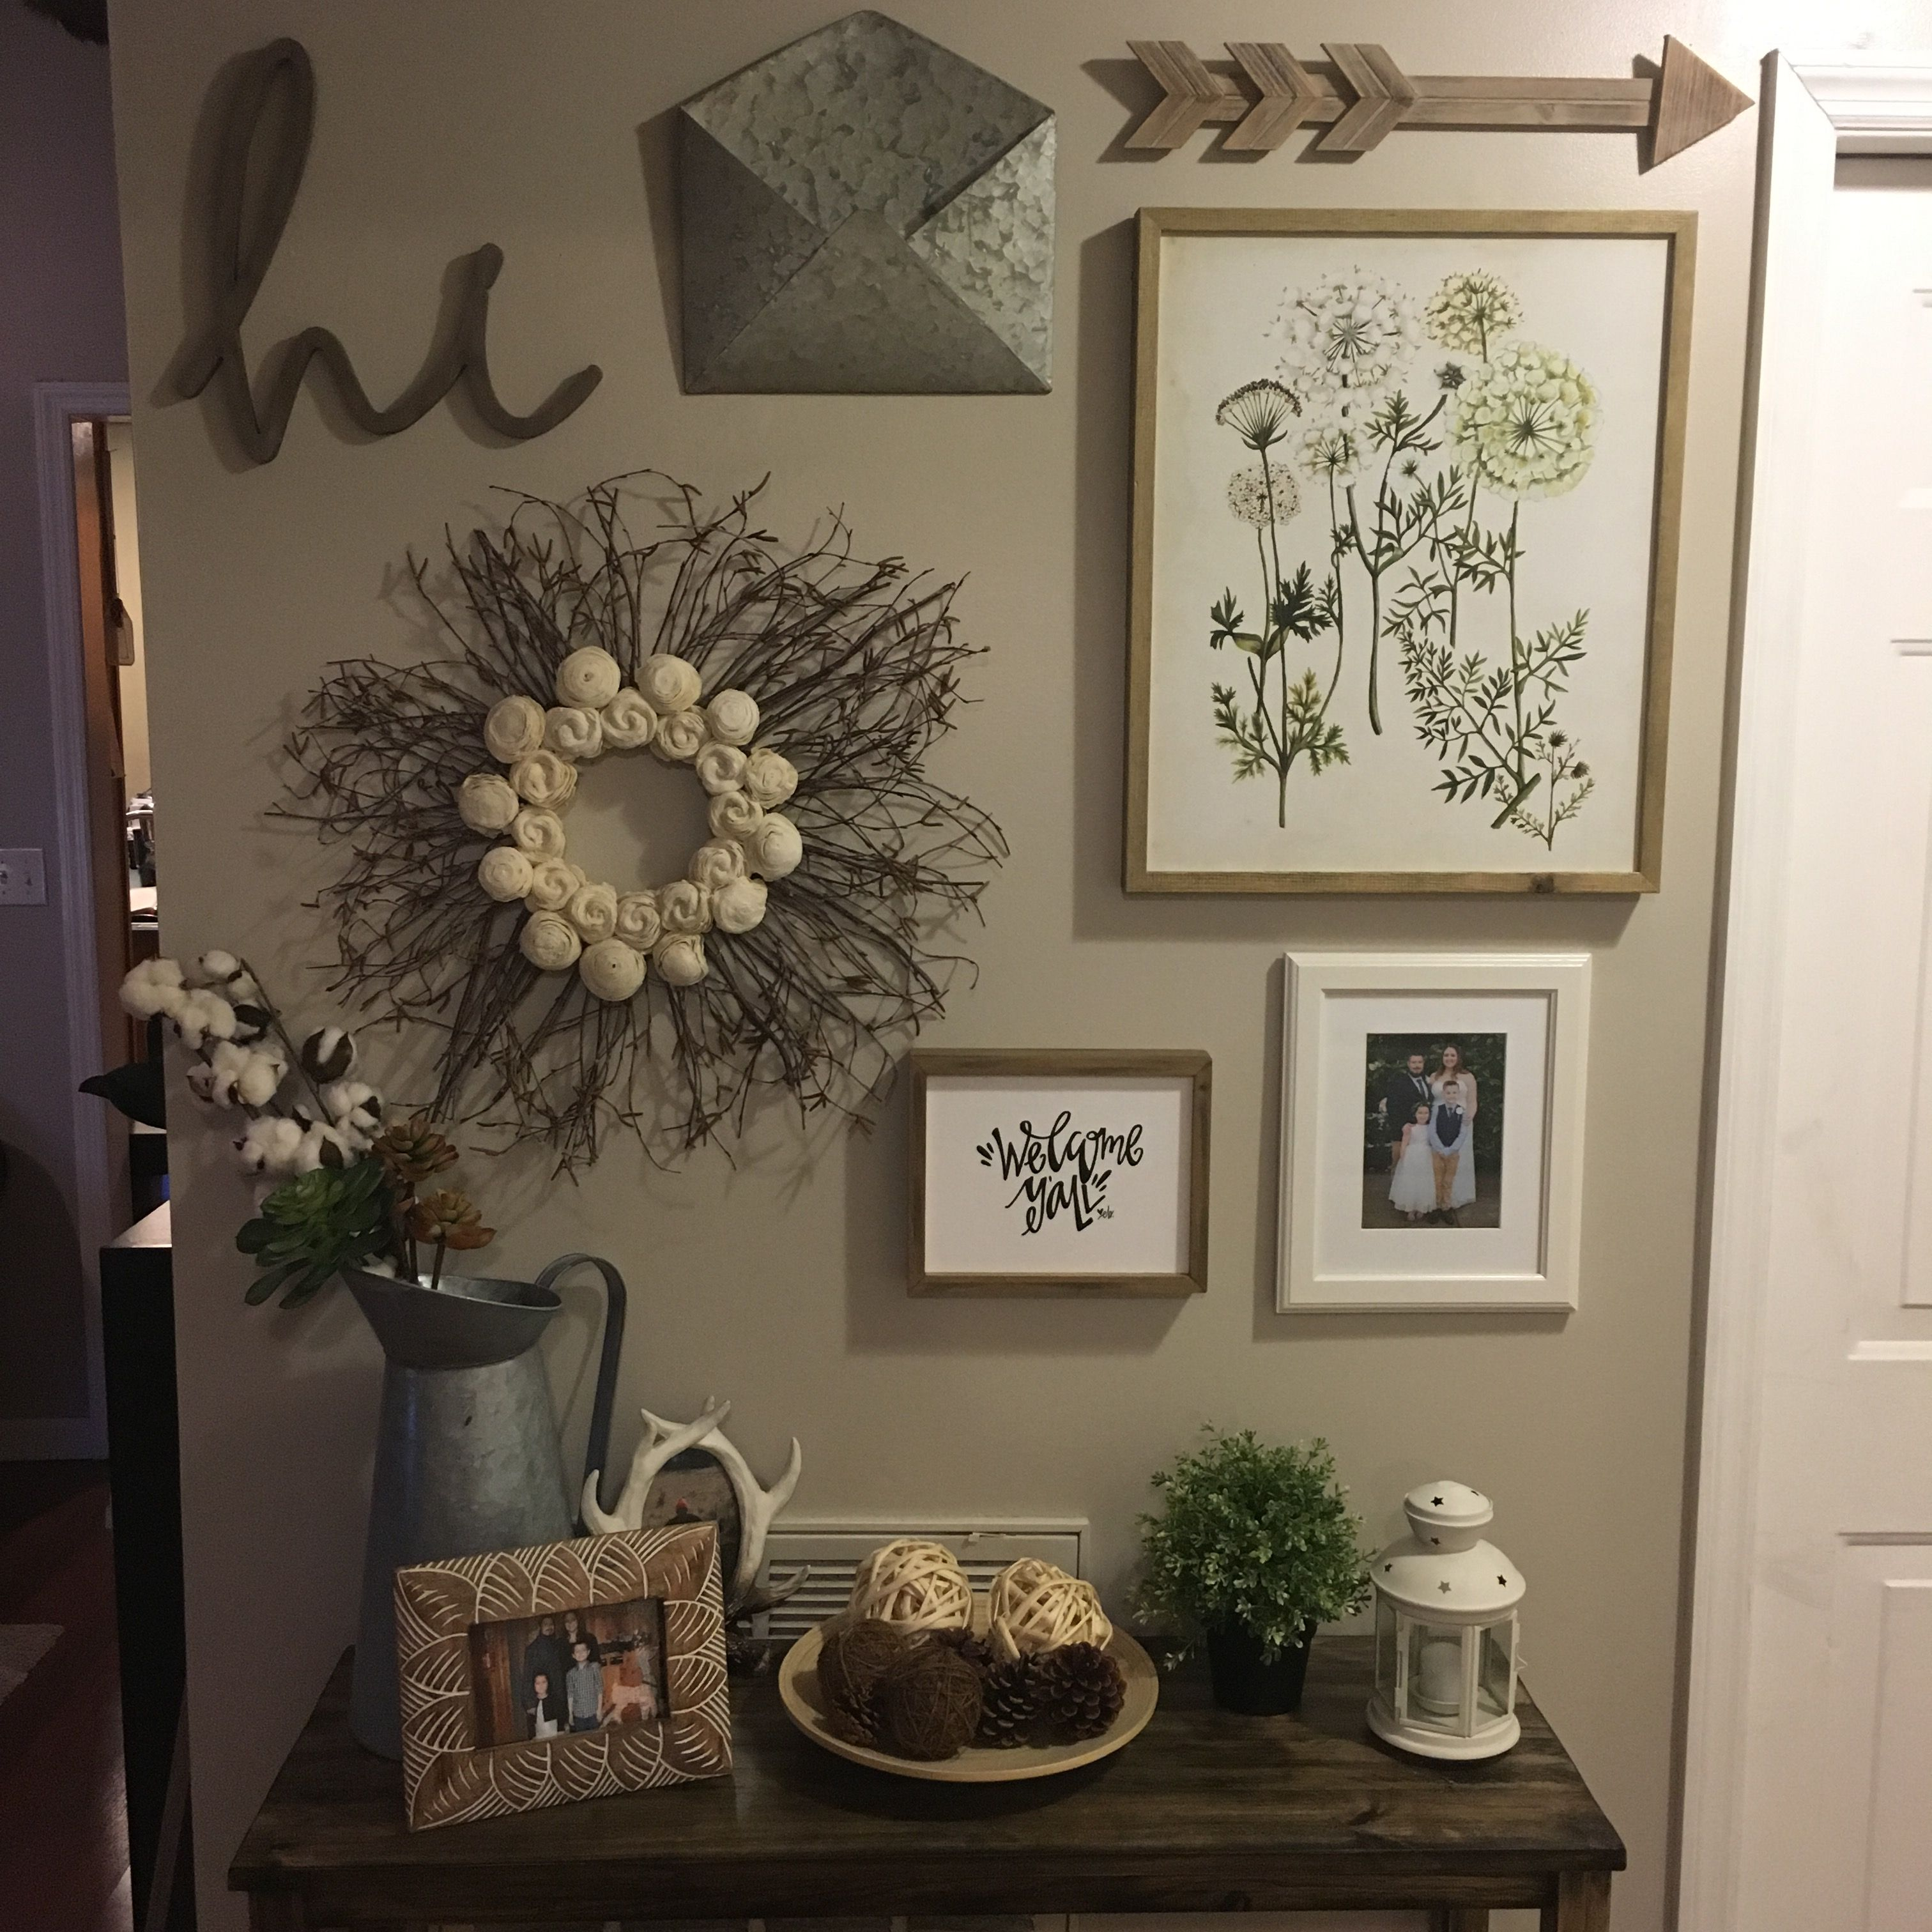 Entryway gallery wall with a rustic farmhouse theme, most